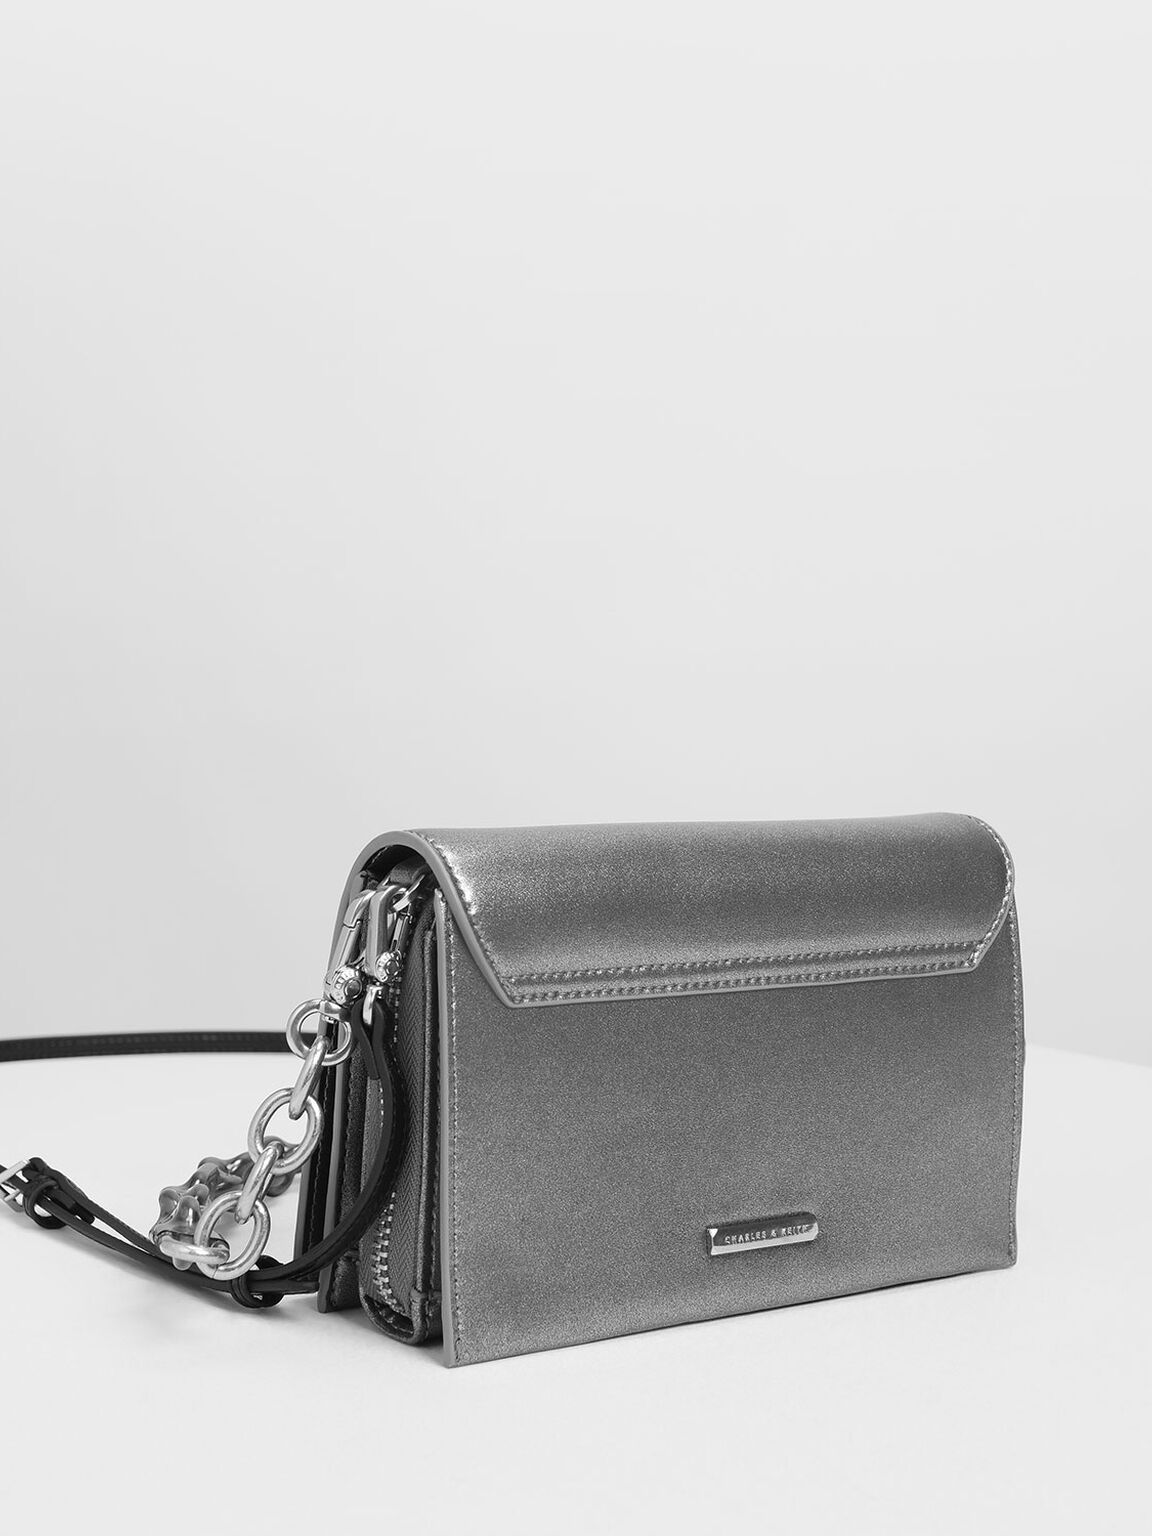 Chain Strap Crossbody Bag, Silver, hi-res